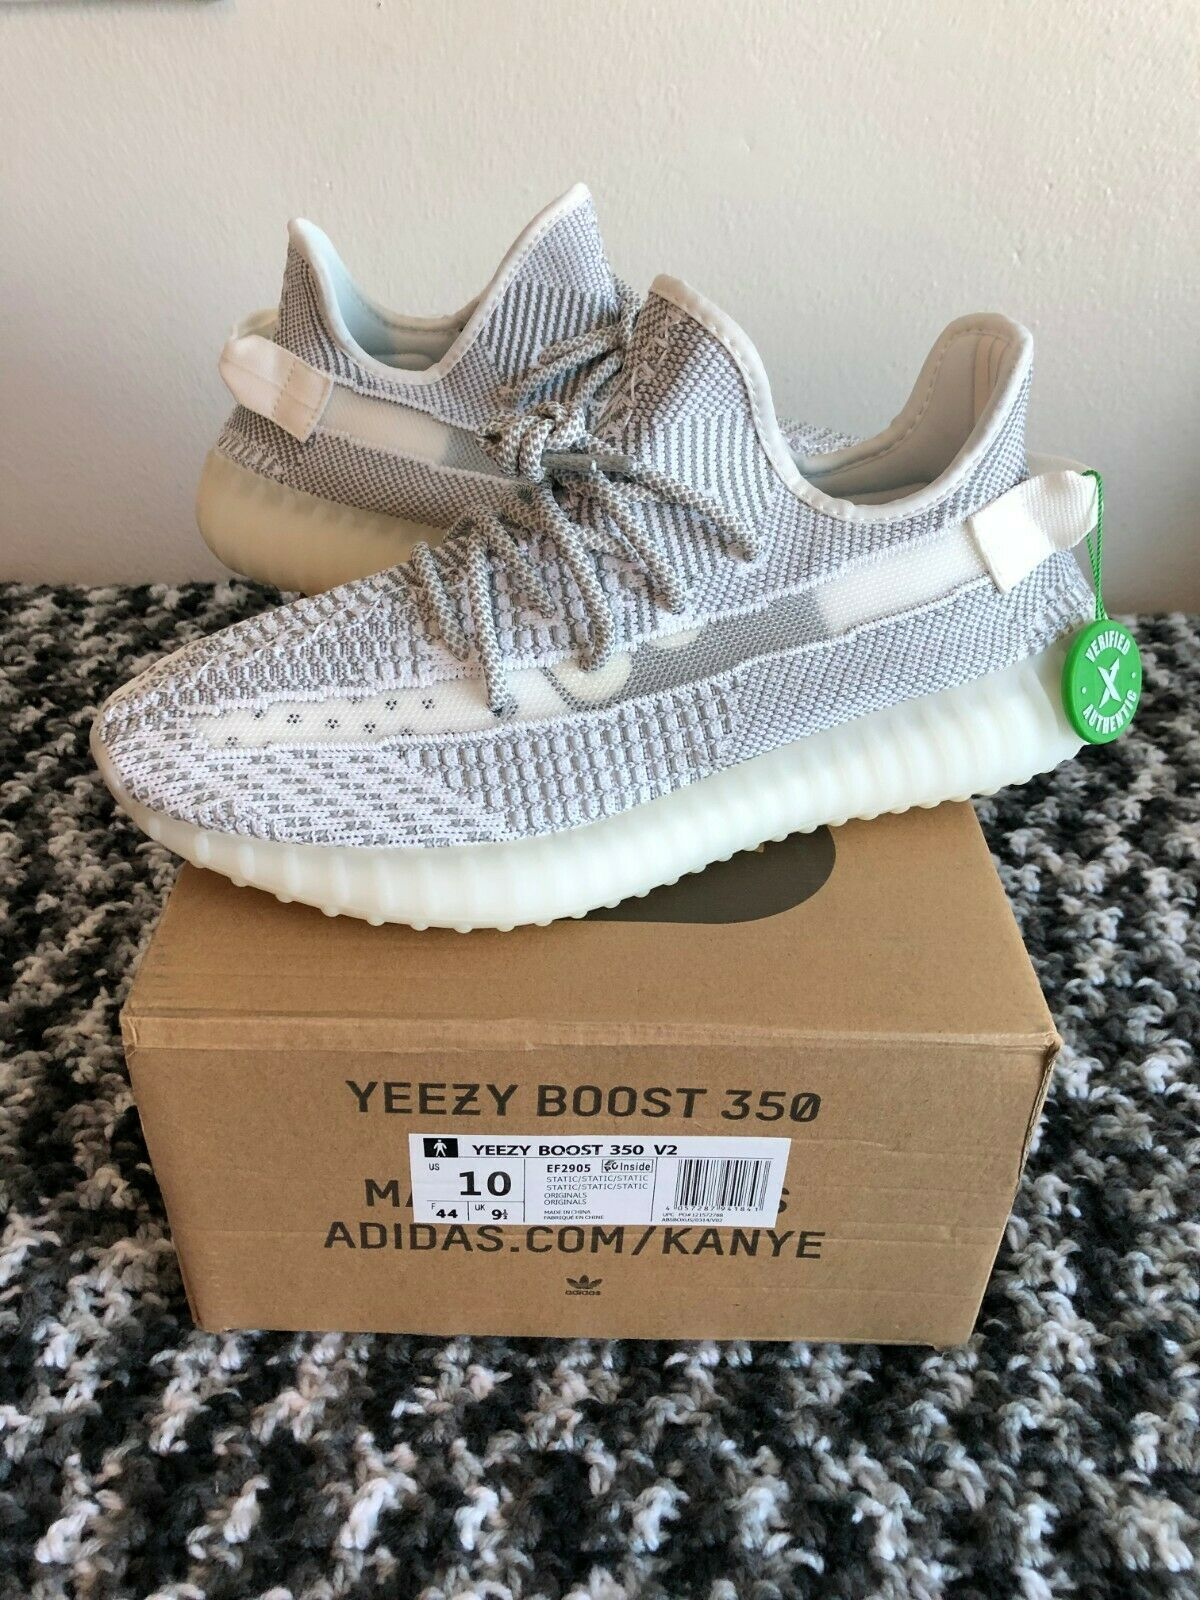 Yeezy Boost 350 V2 Static Reflective Size 10 with Original